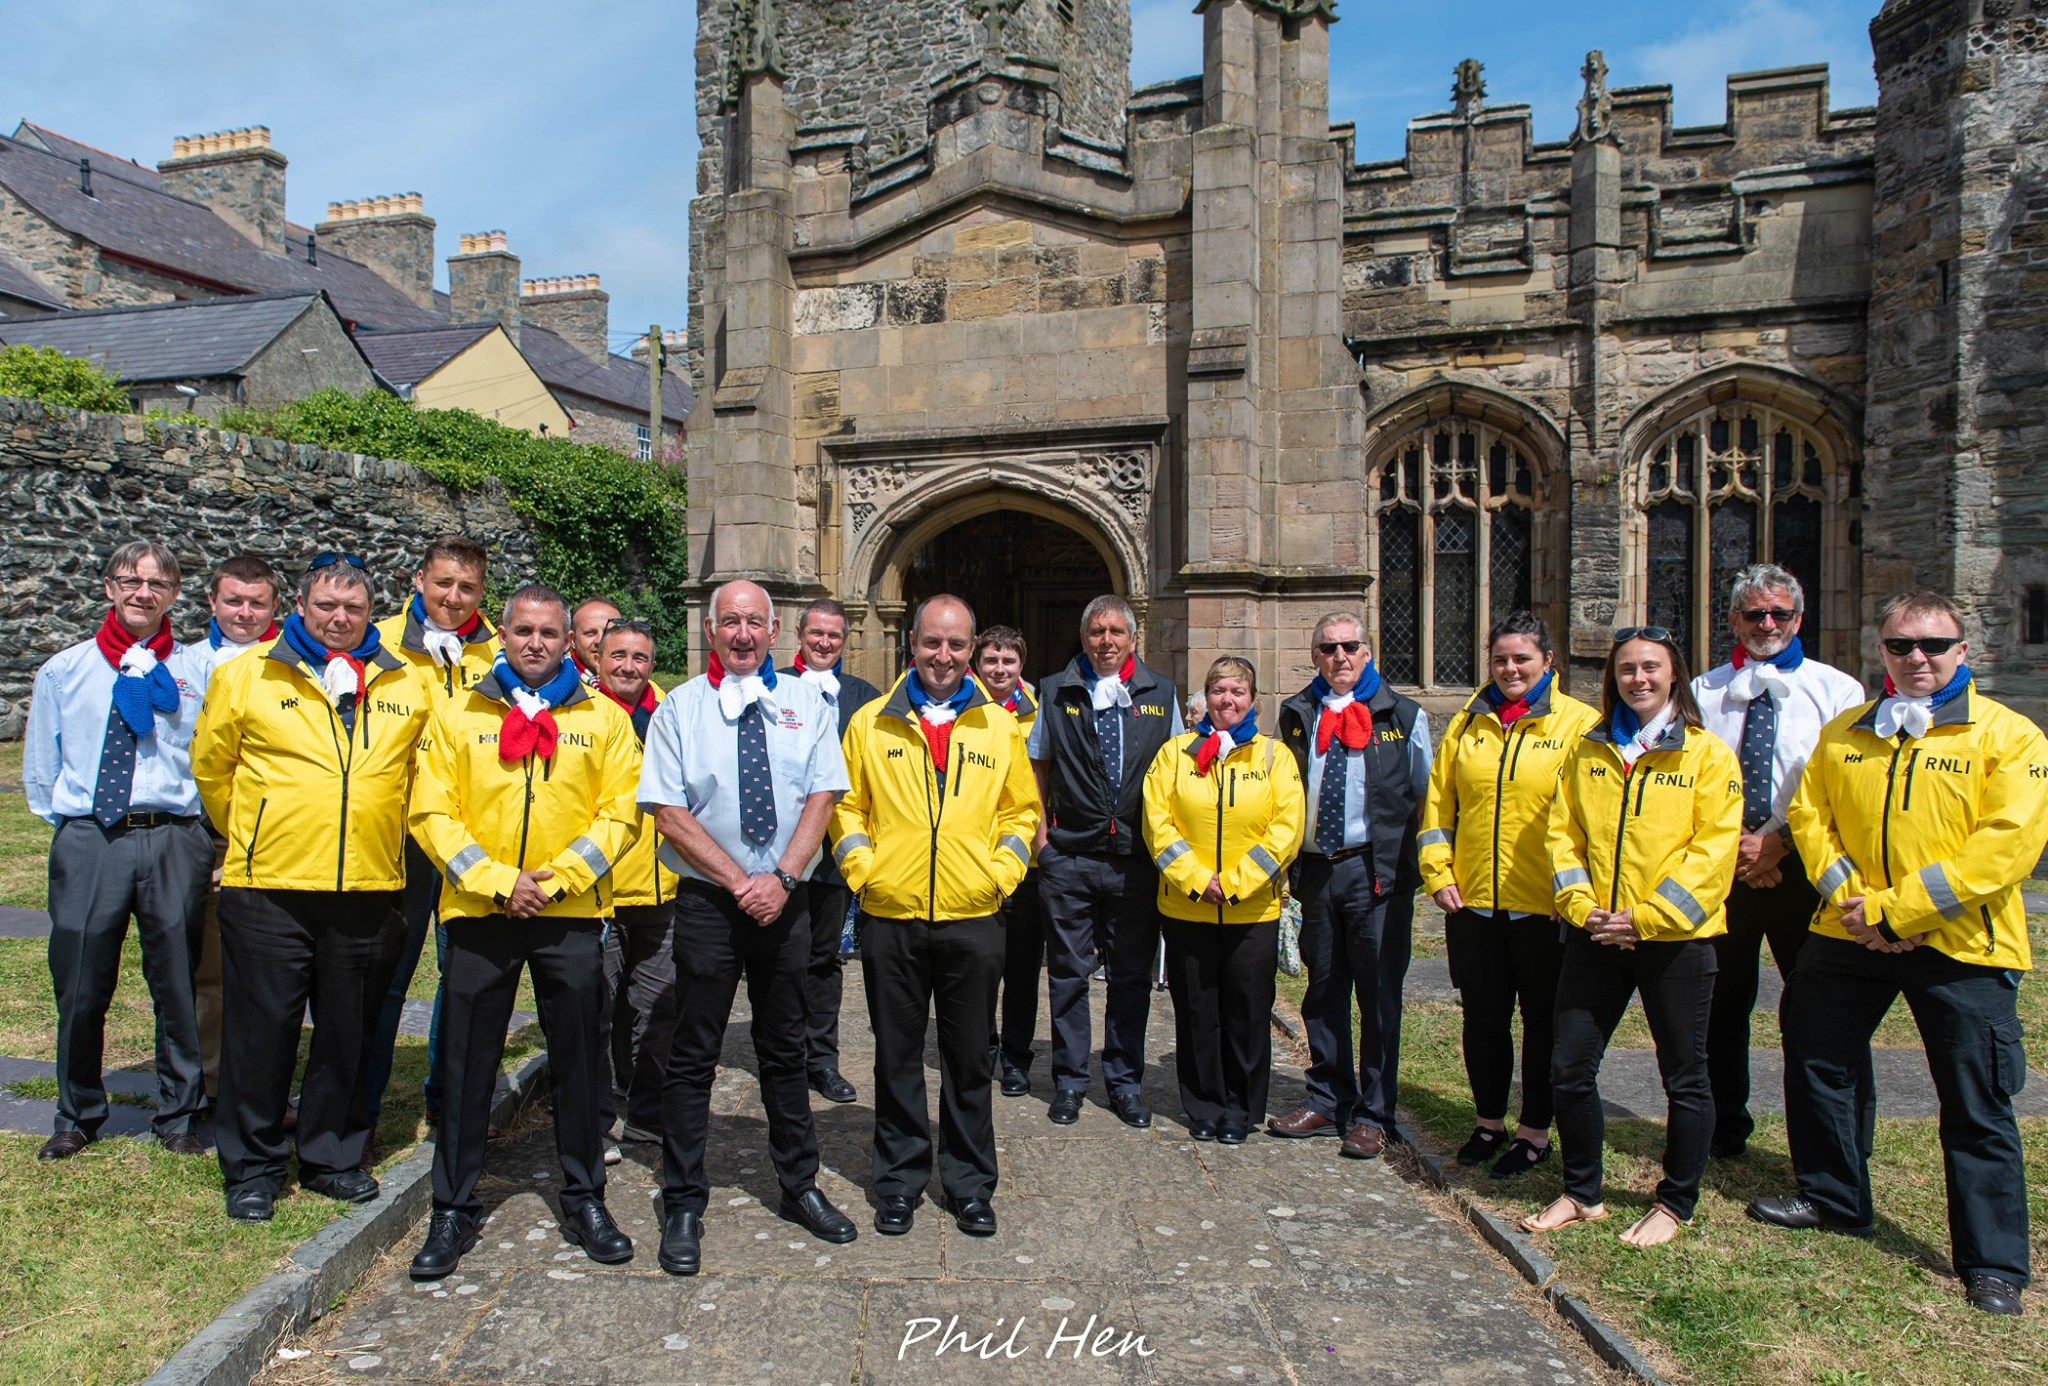 Group of RNLI lifeboat men in front of a church